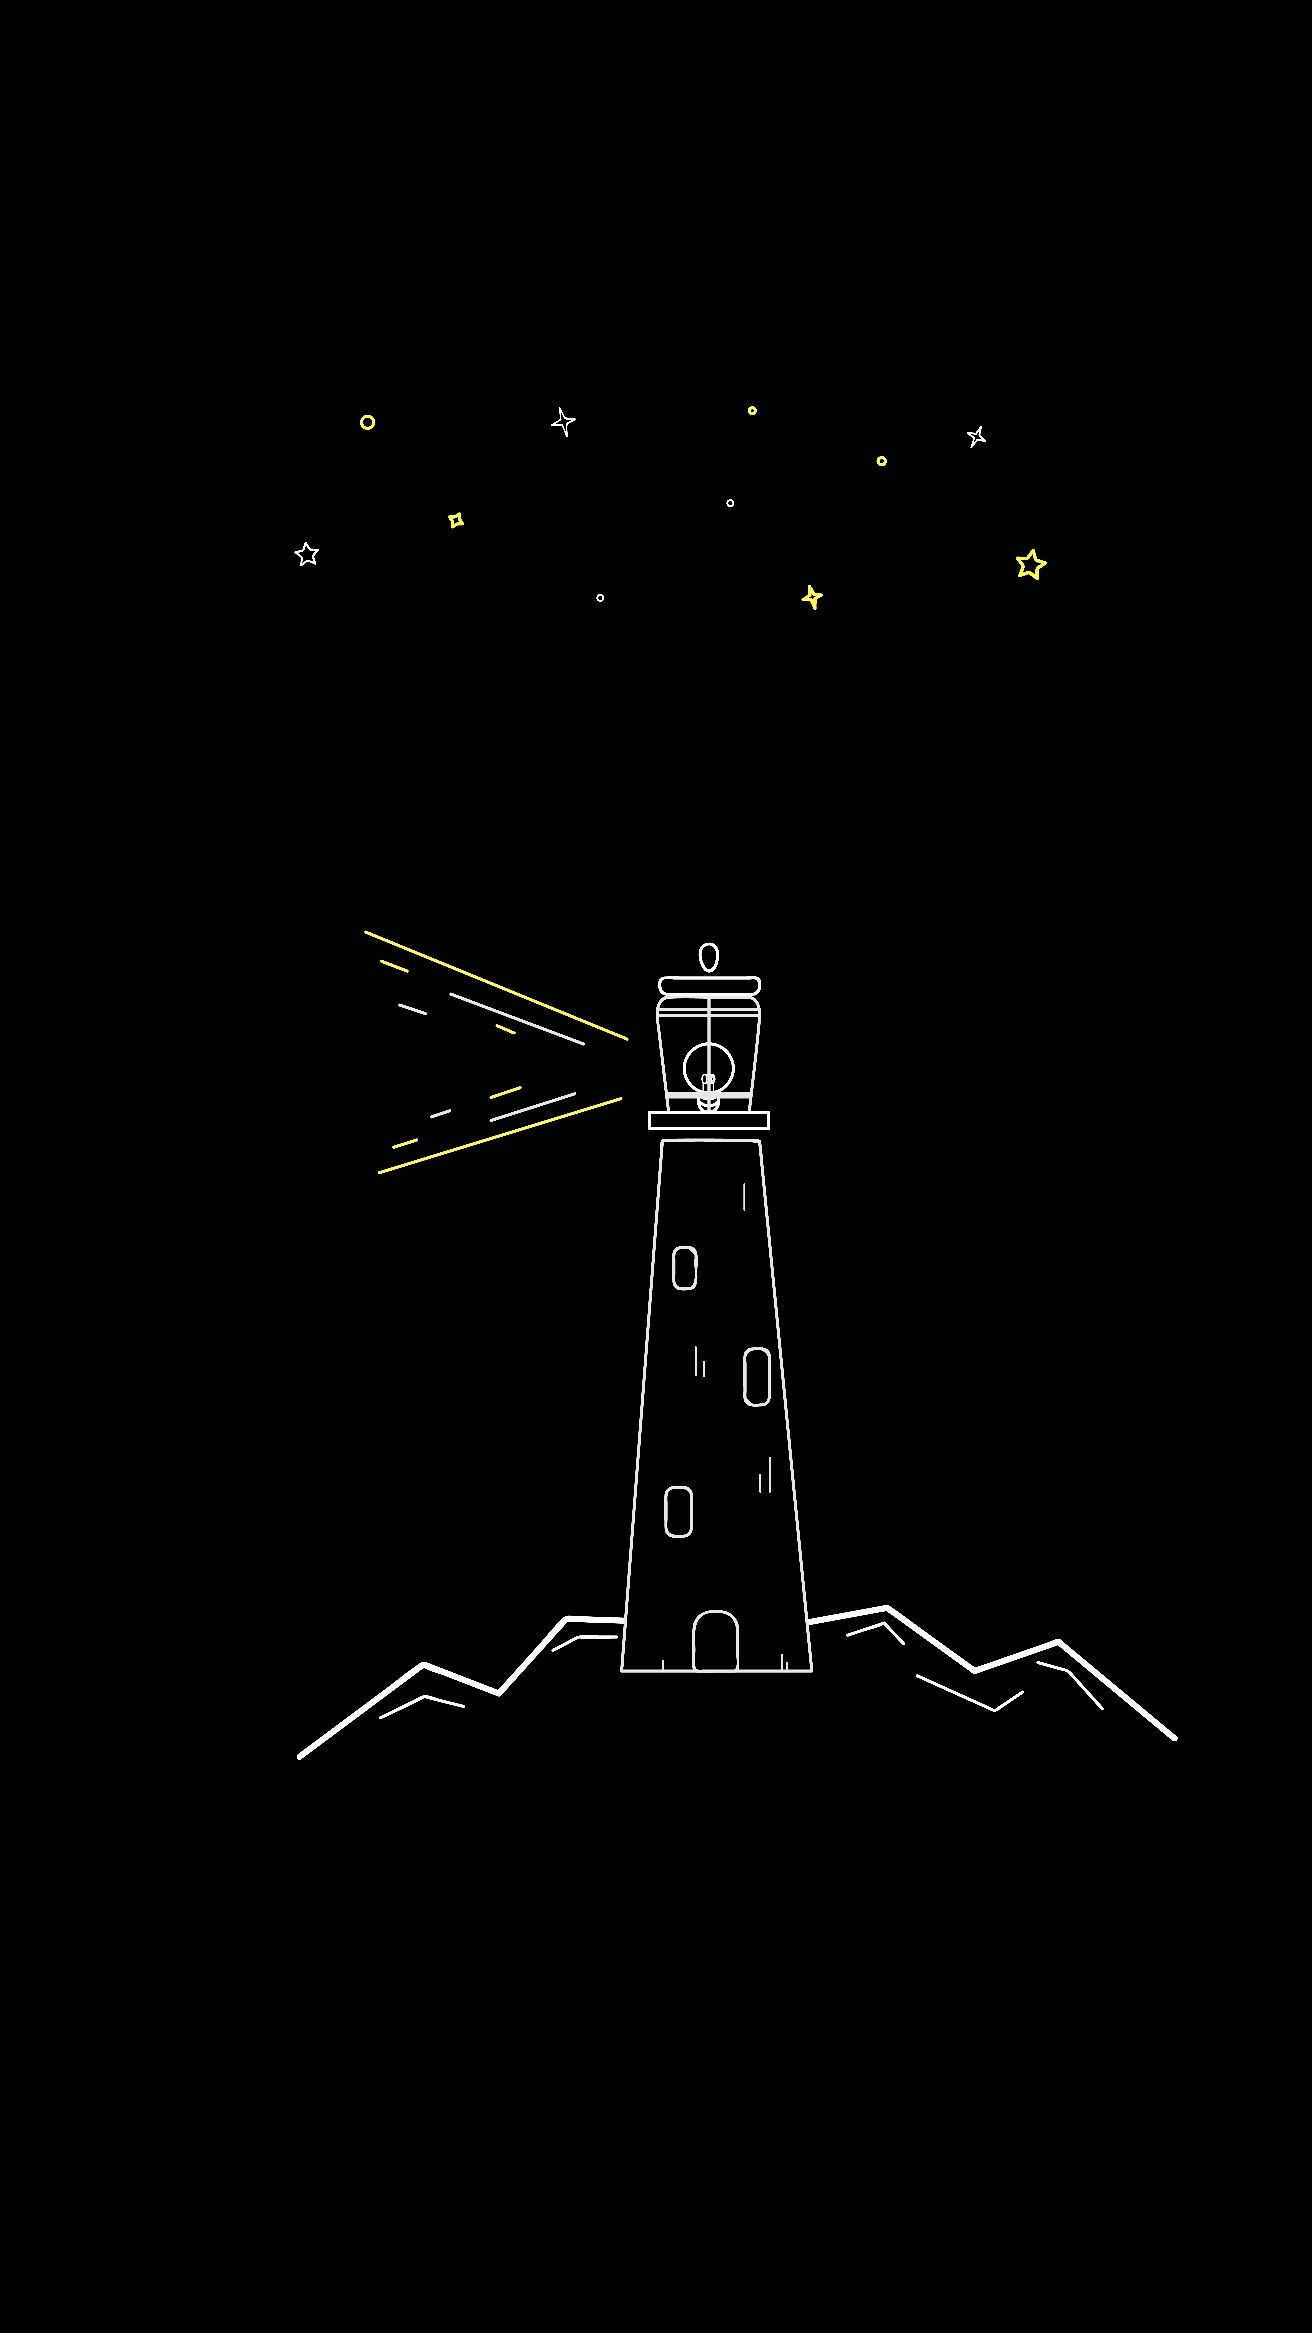 Light House Minimalist Wallpaper Black Paper Drawing Art Wallpaper Iphone